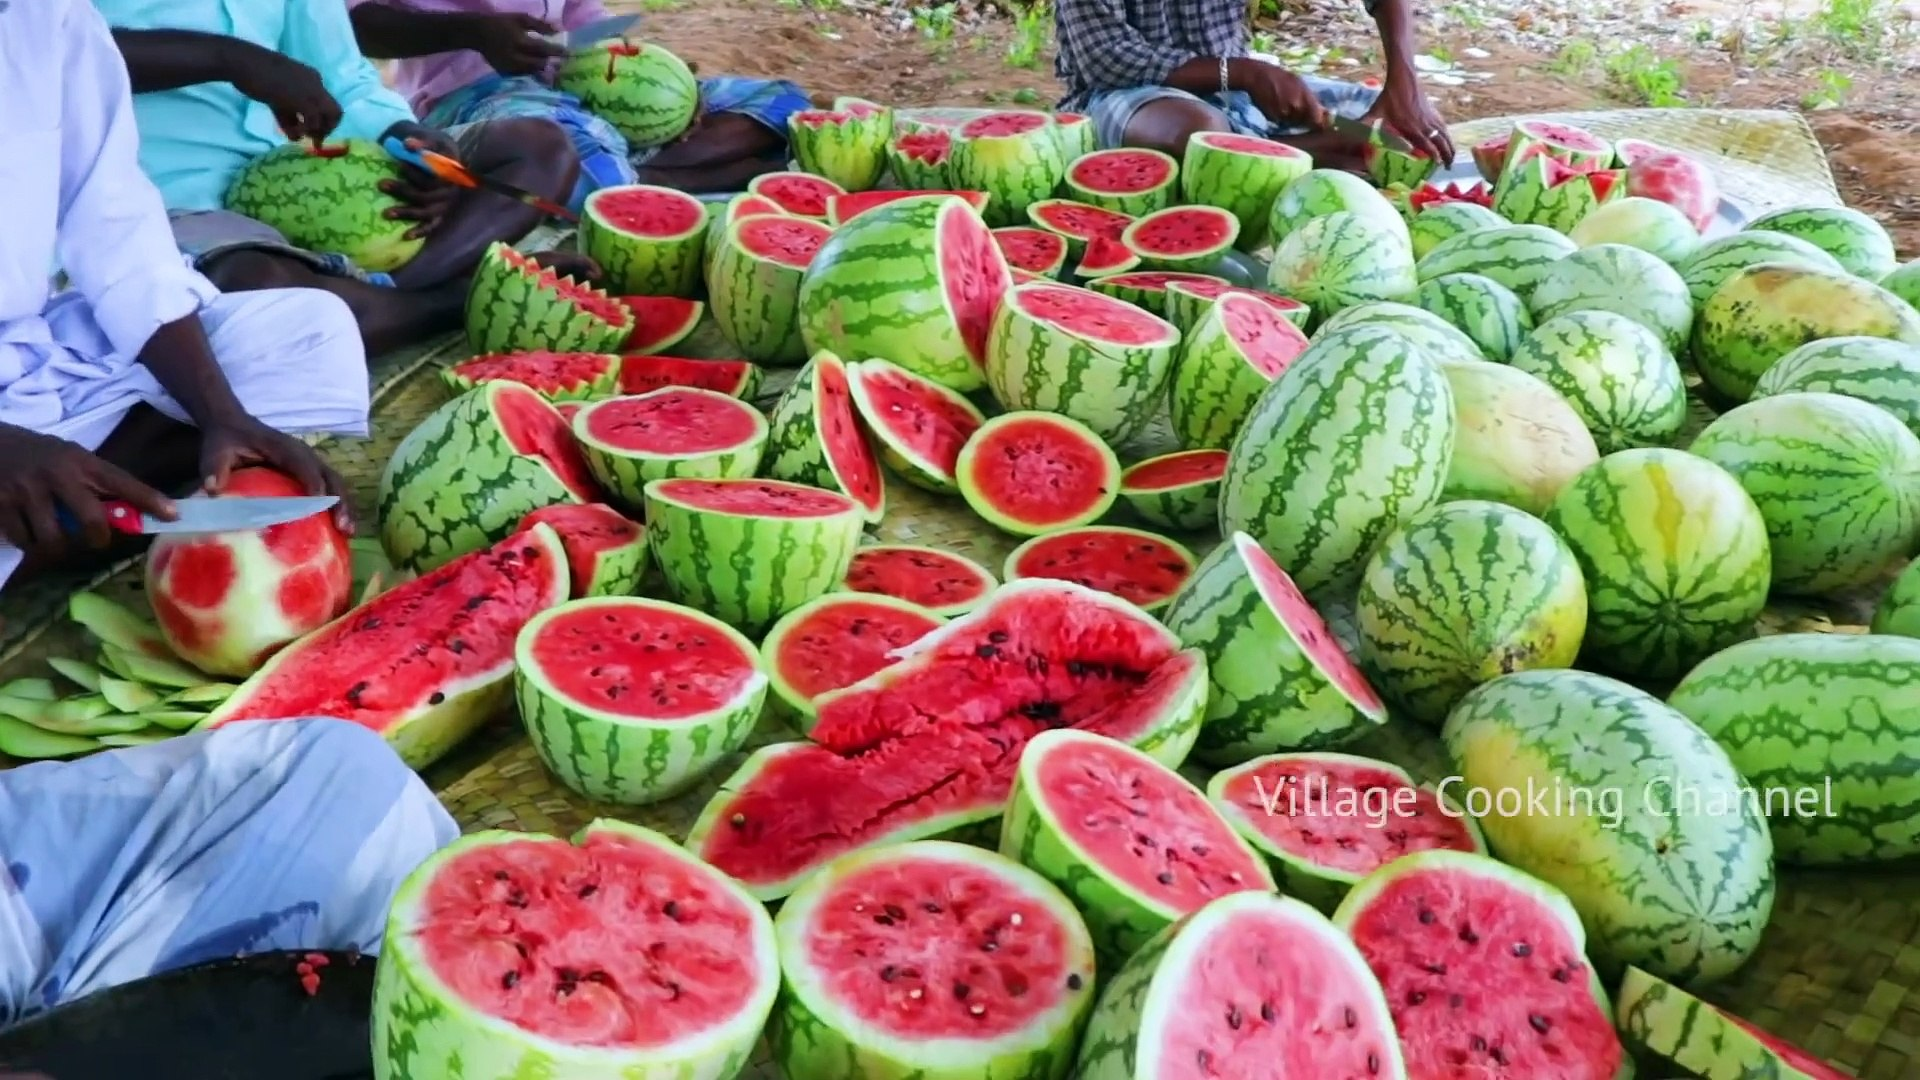 500 KG WATERMELON - Summer Health Drinks - WaterMelon Juice from Farm Fresh Fruits - Village Cooking